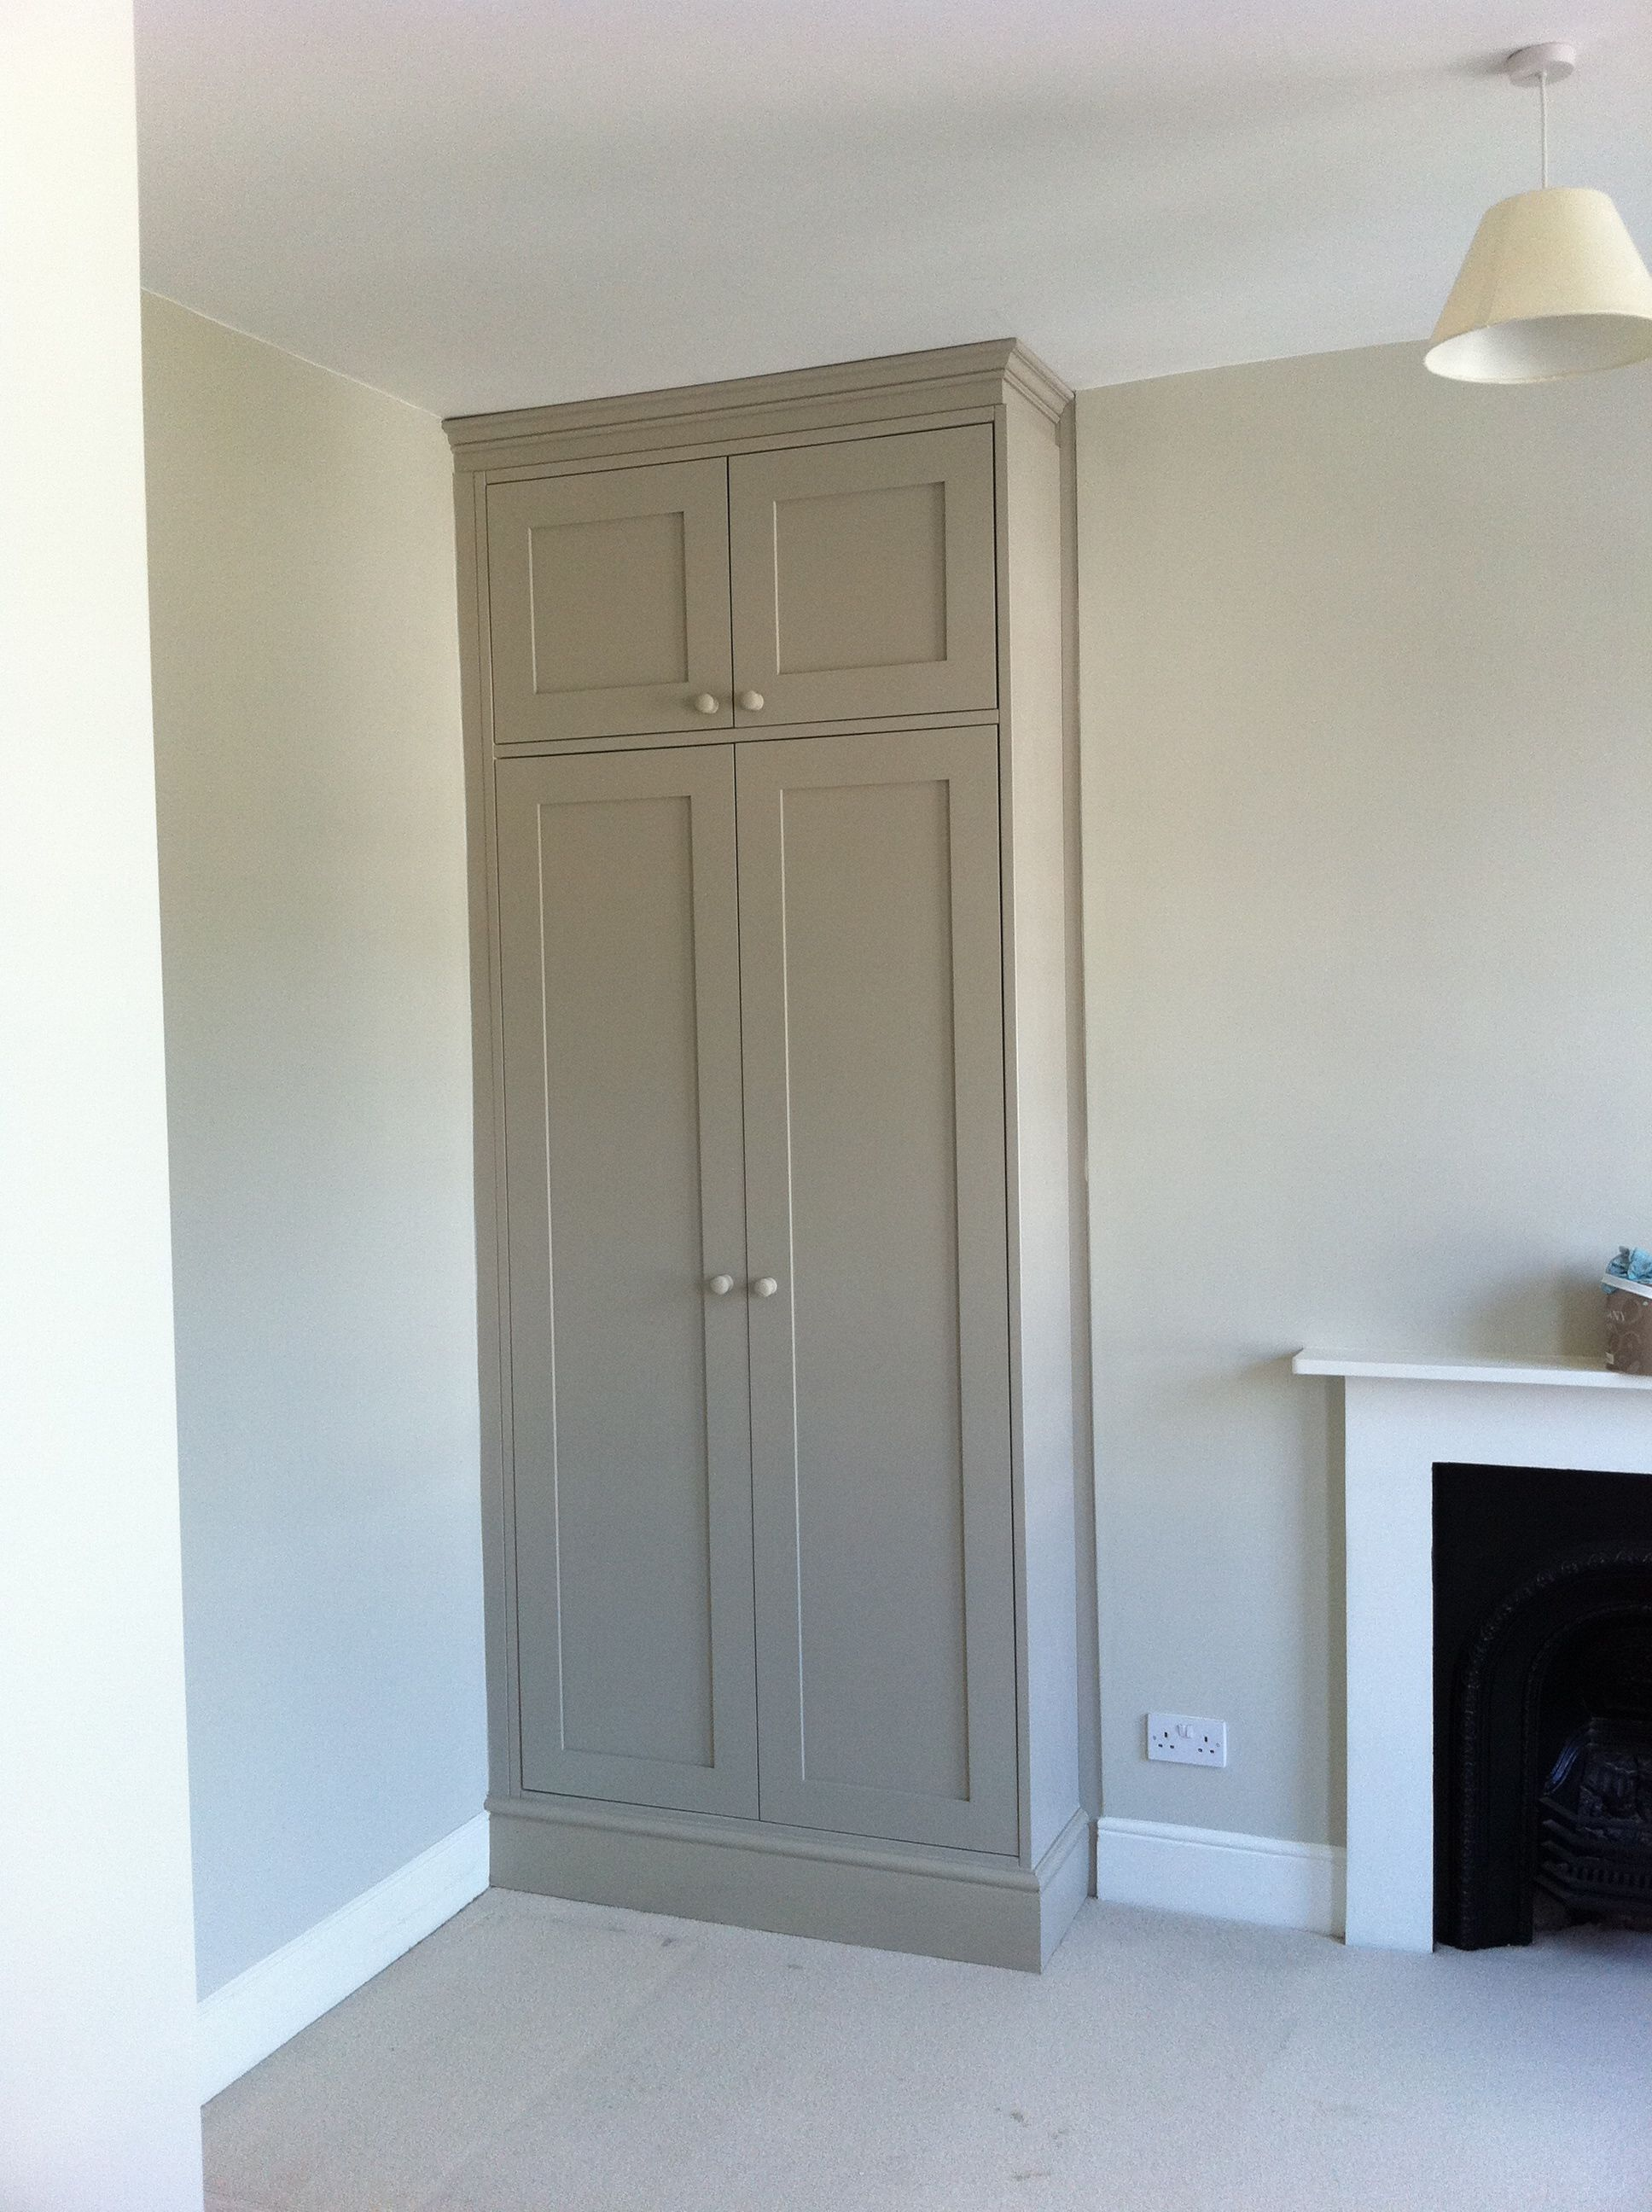 Bespoke Fitted Wardrobe With Shaker Panel Doors By Fine Balance Carpentry Good Simple